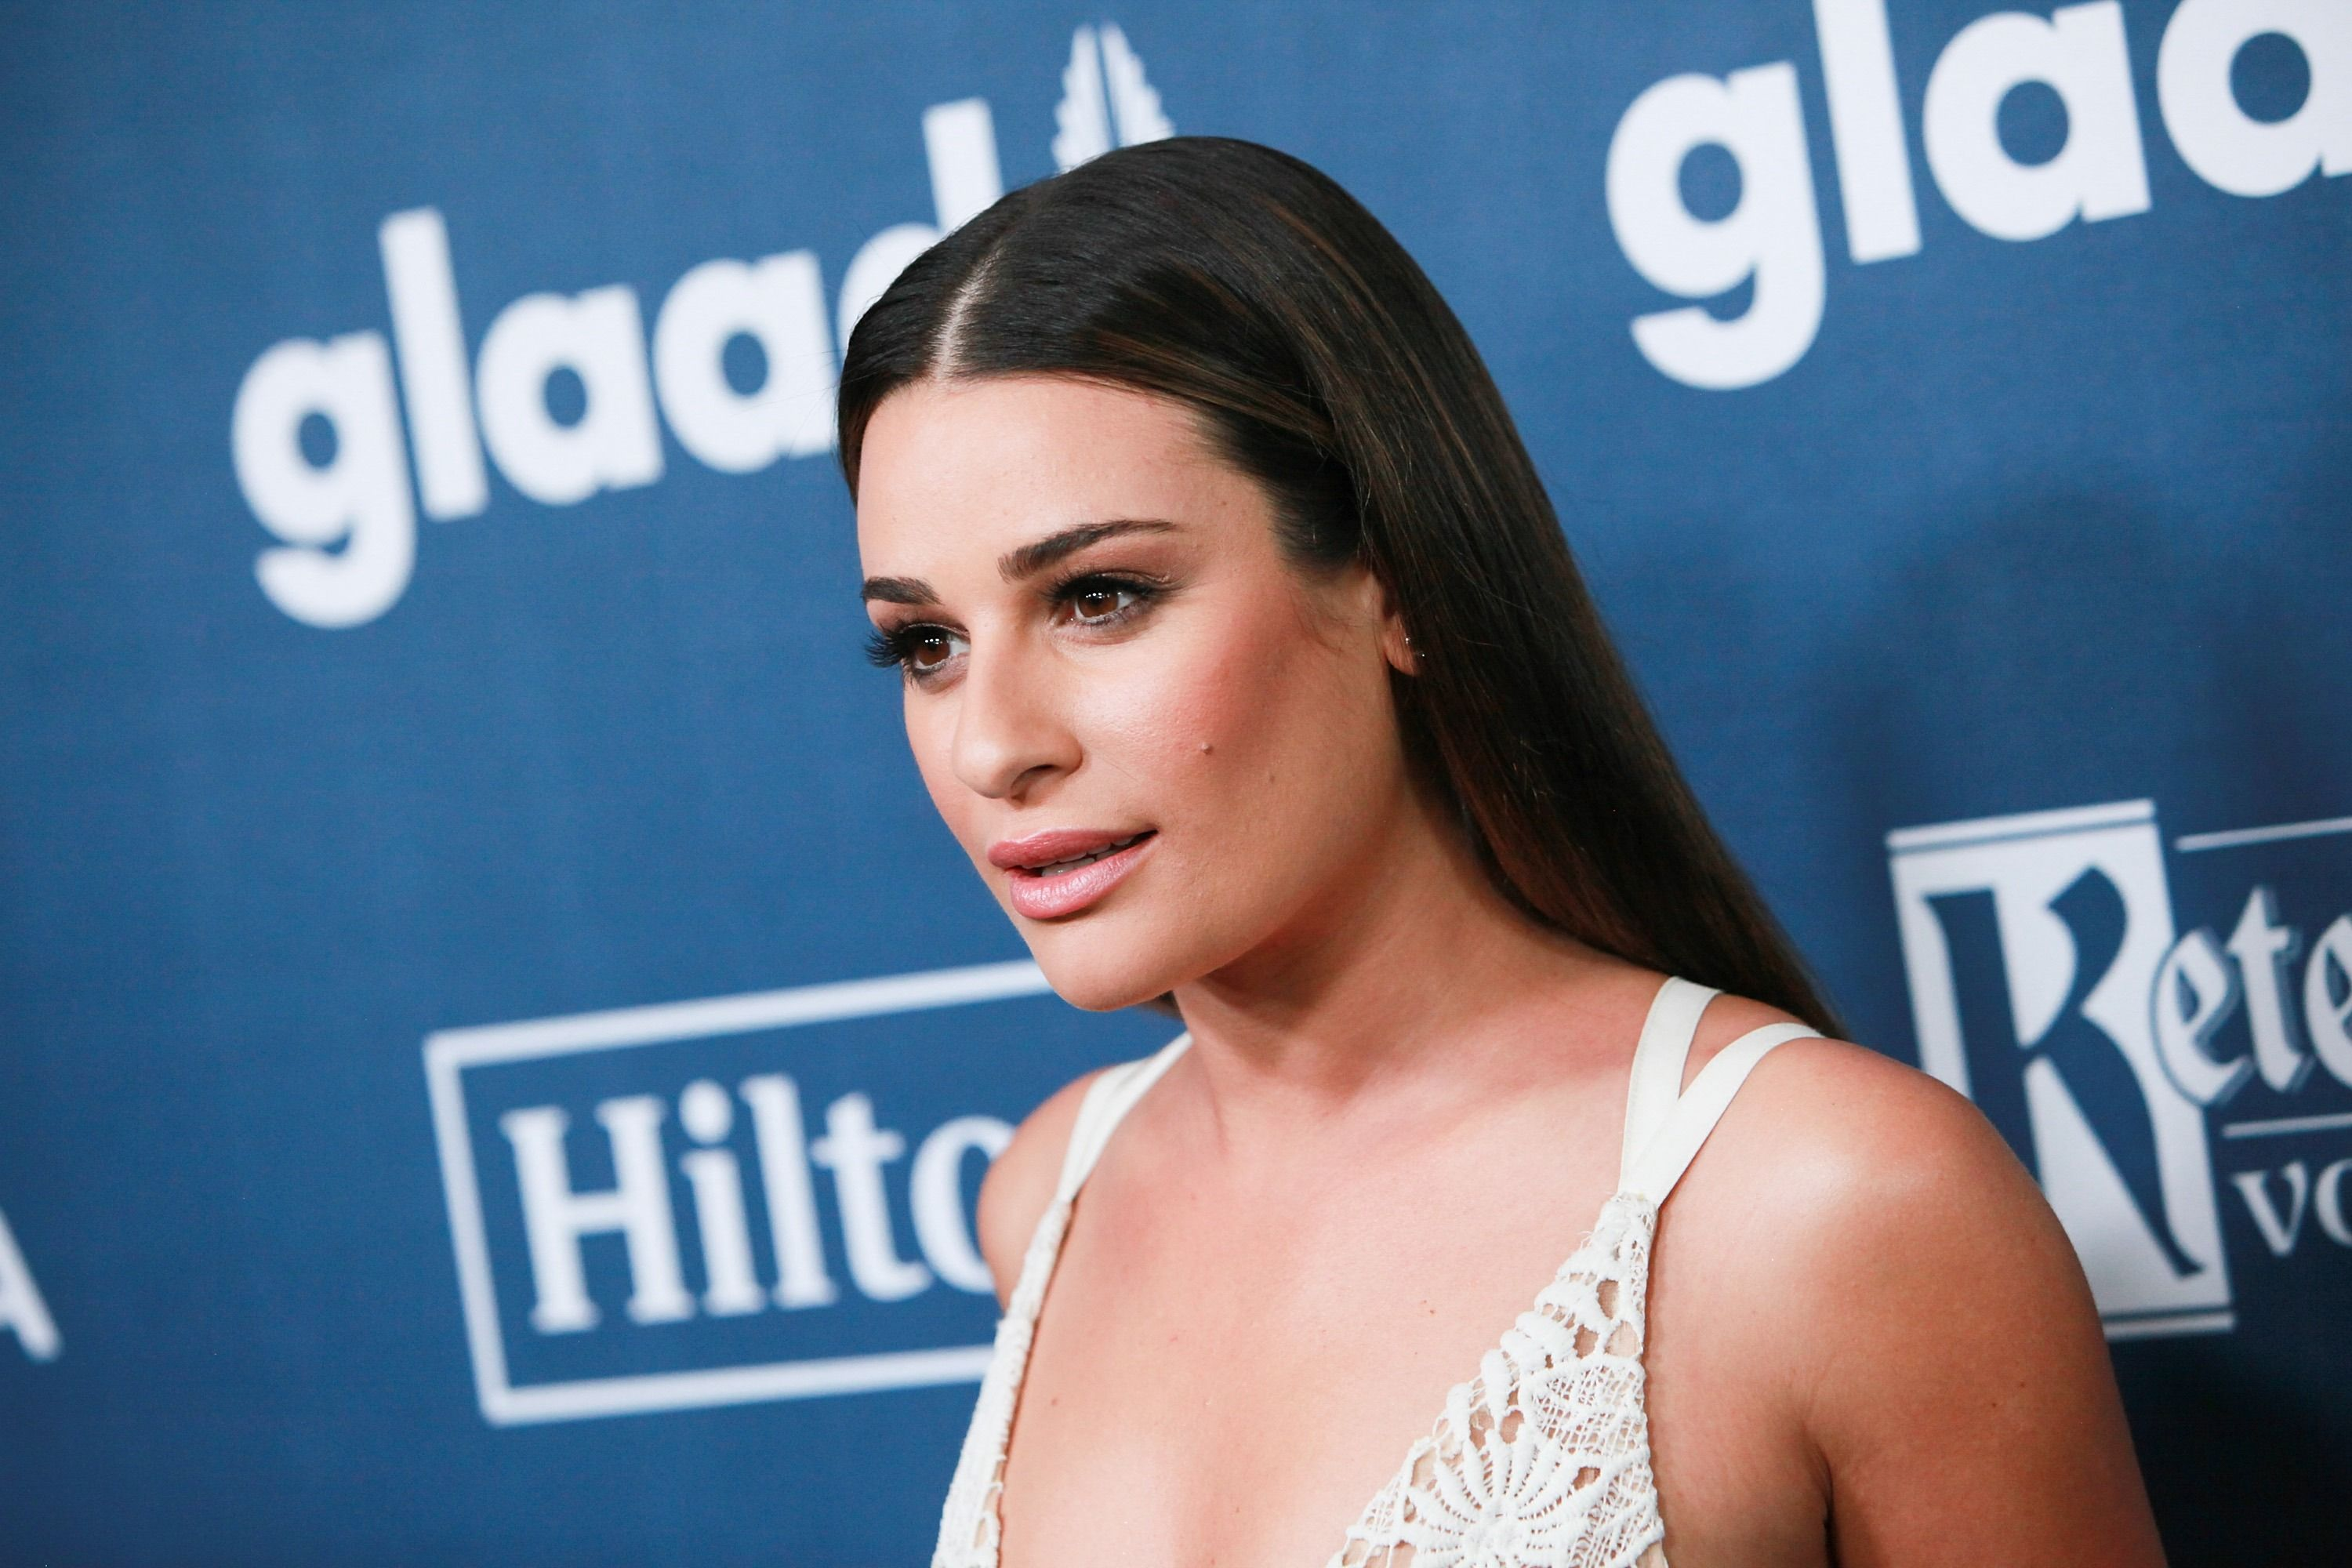 Exclusive: Lea Michele on Pizza, Beauty Bargains, and Her Biggest Hair Regret